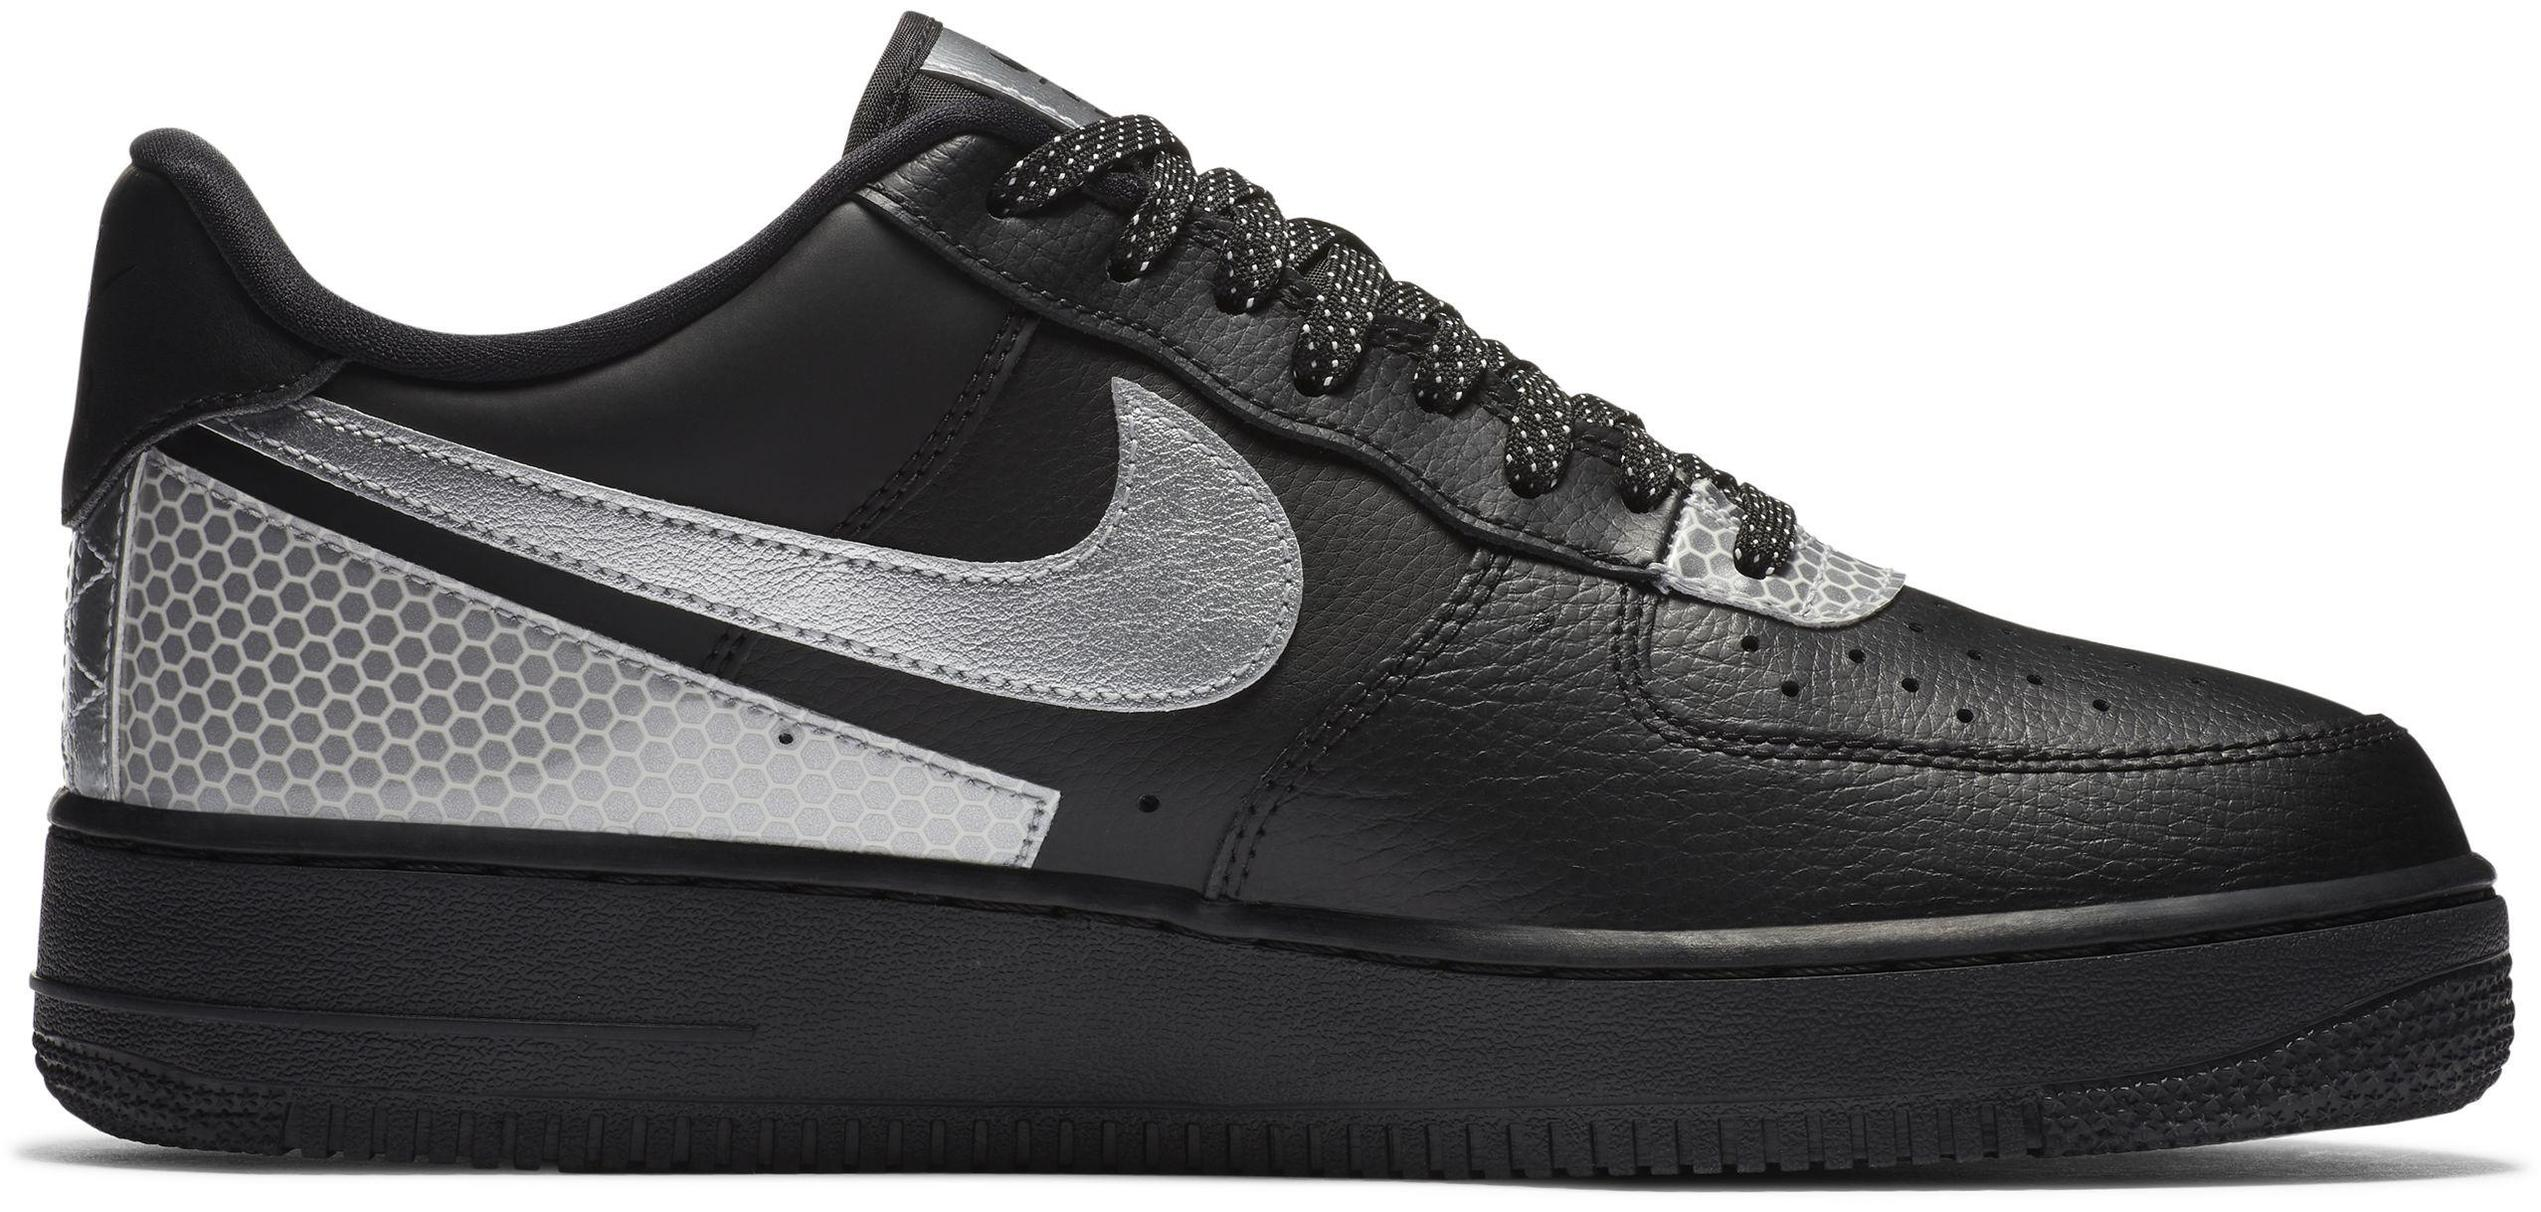 Nike Air Force 1 '07 LV8 Black/Black/Metallic Silver